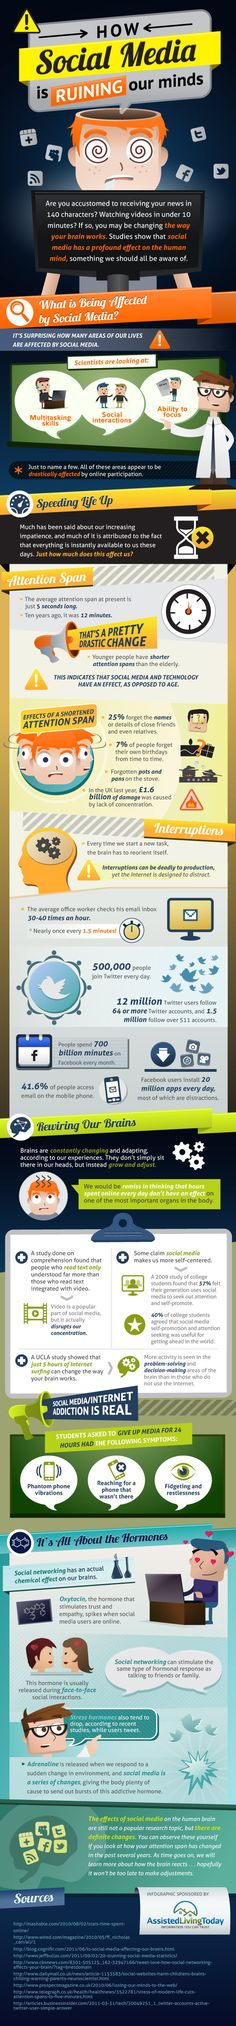 [Infographic] Has social media ruined us?